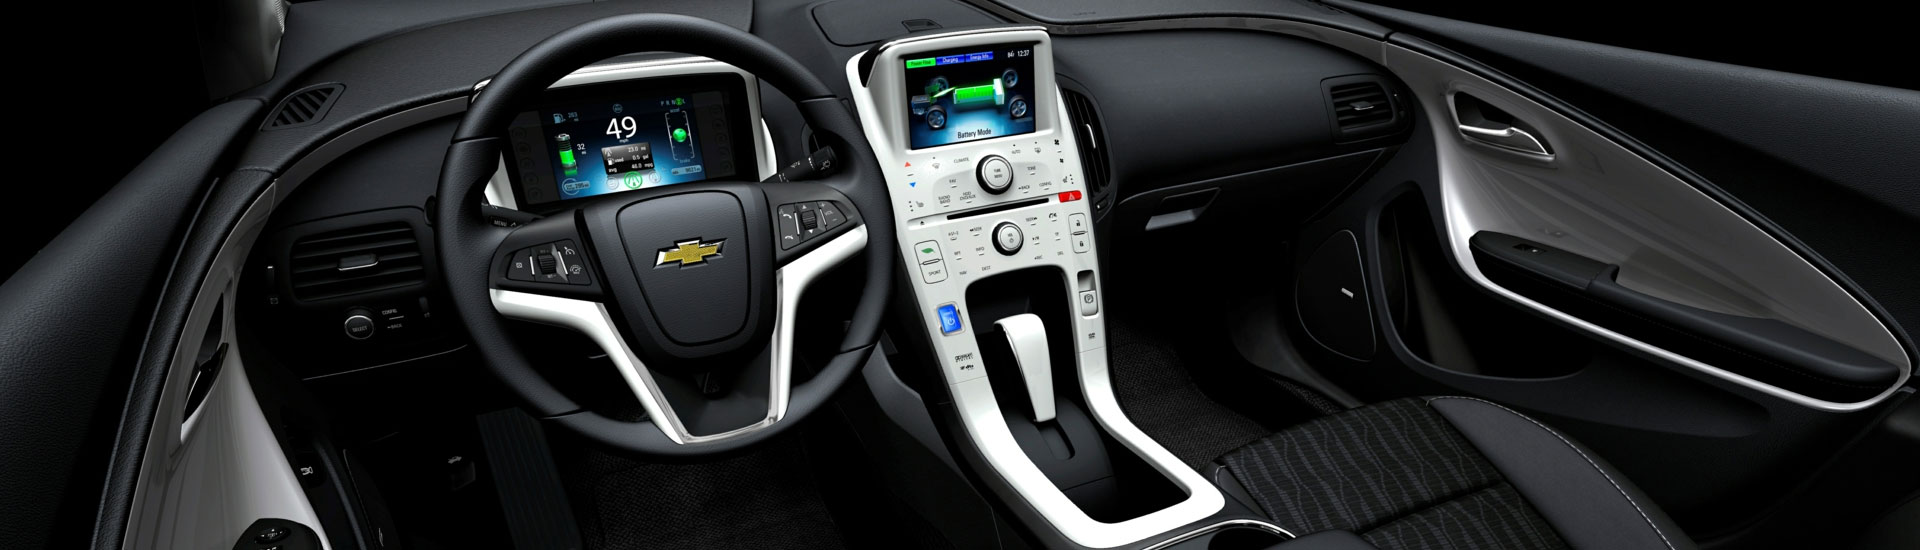 chevrolet volt dash kits custom chevrolet volt dash kit. Black Bedroom Furniture Sets. Home Design Ideas